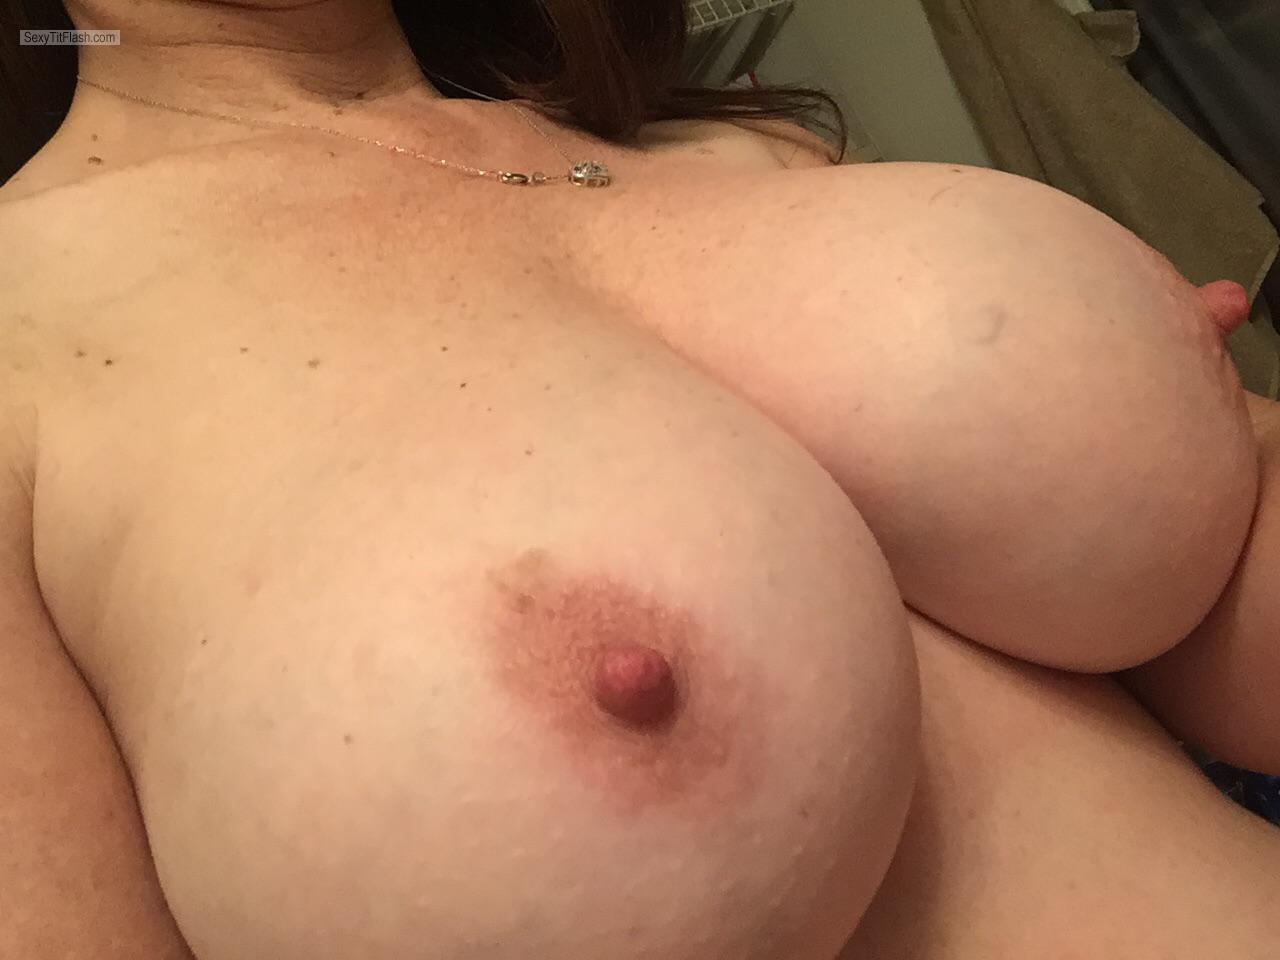 Tit Flash: My Medium Tits (Selfie) - Amy from United States